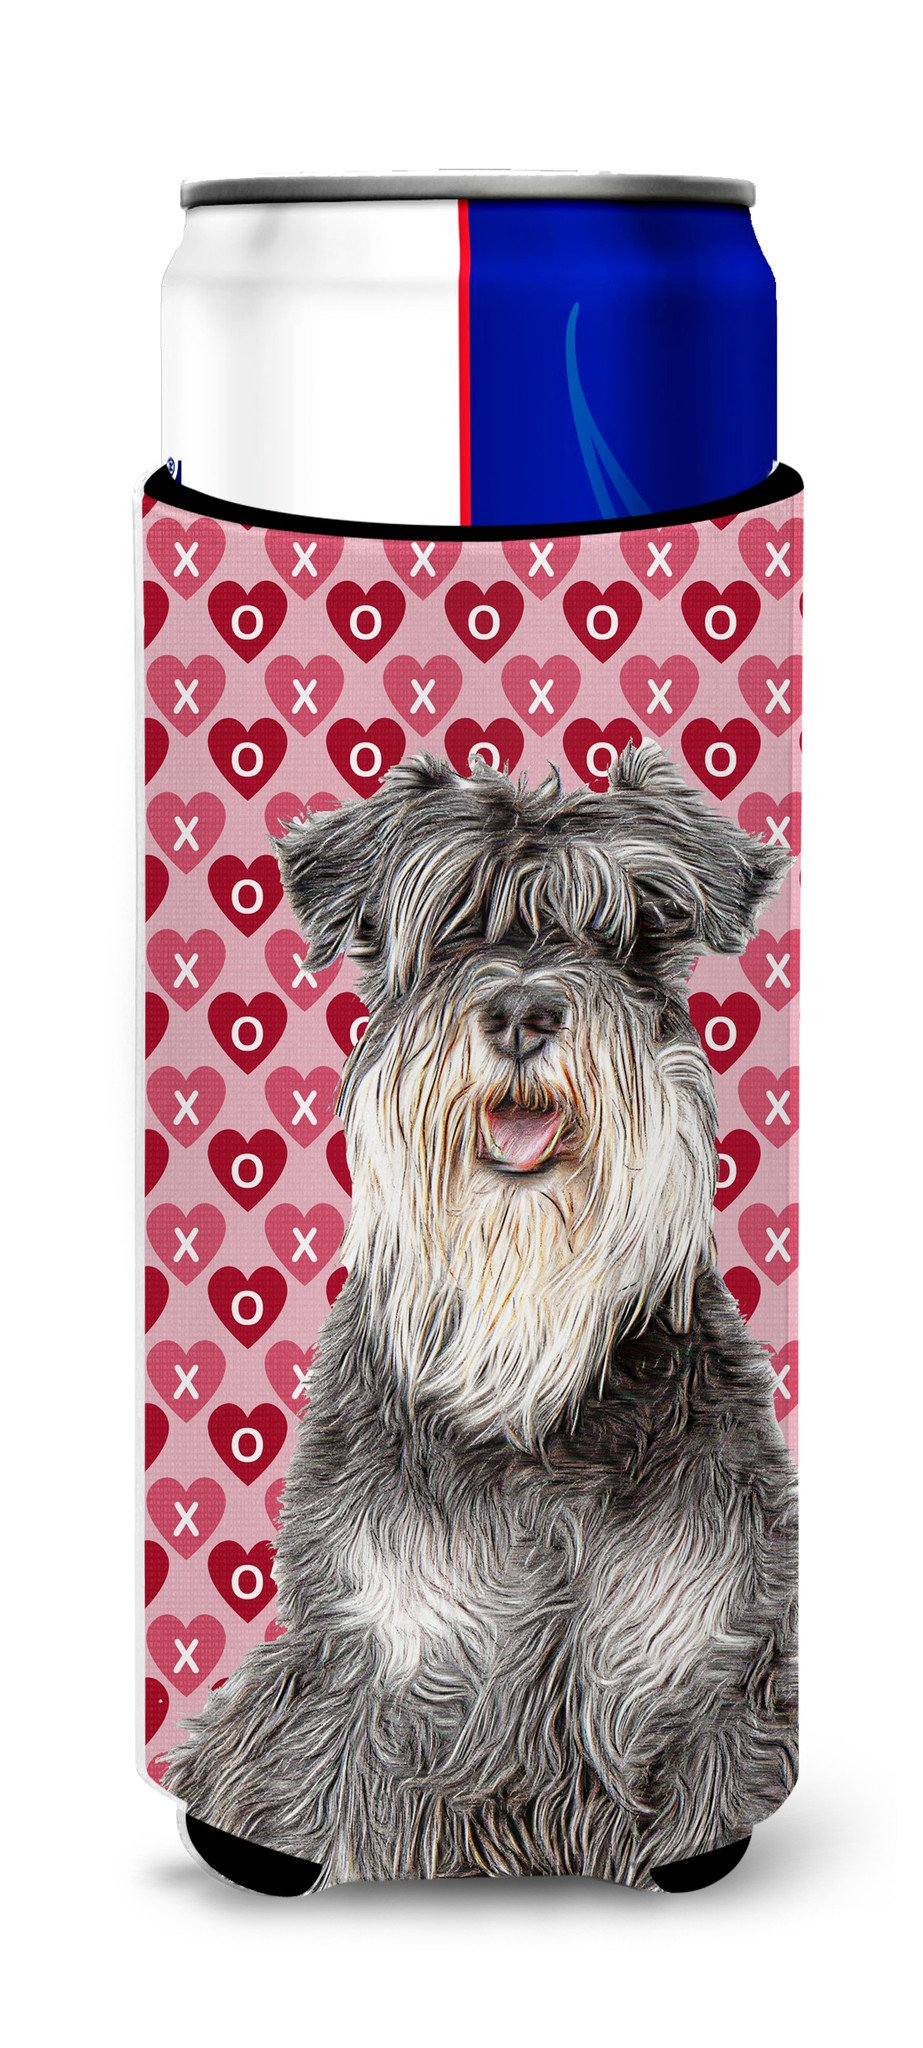 Hearts Love and Valentine's Day Schnauzer Ultra Beverage Insulators for slim cans KJ1192MUK by Caroline's Treasures